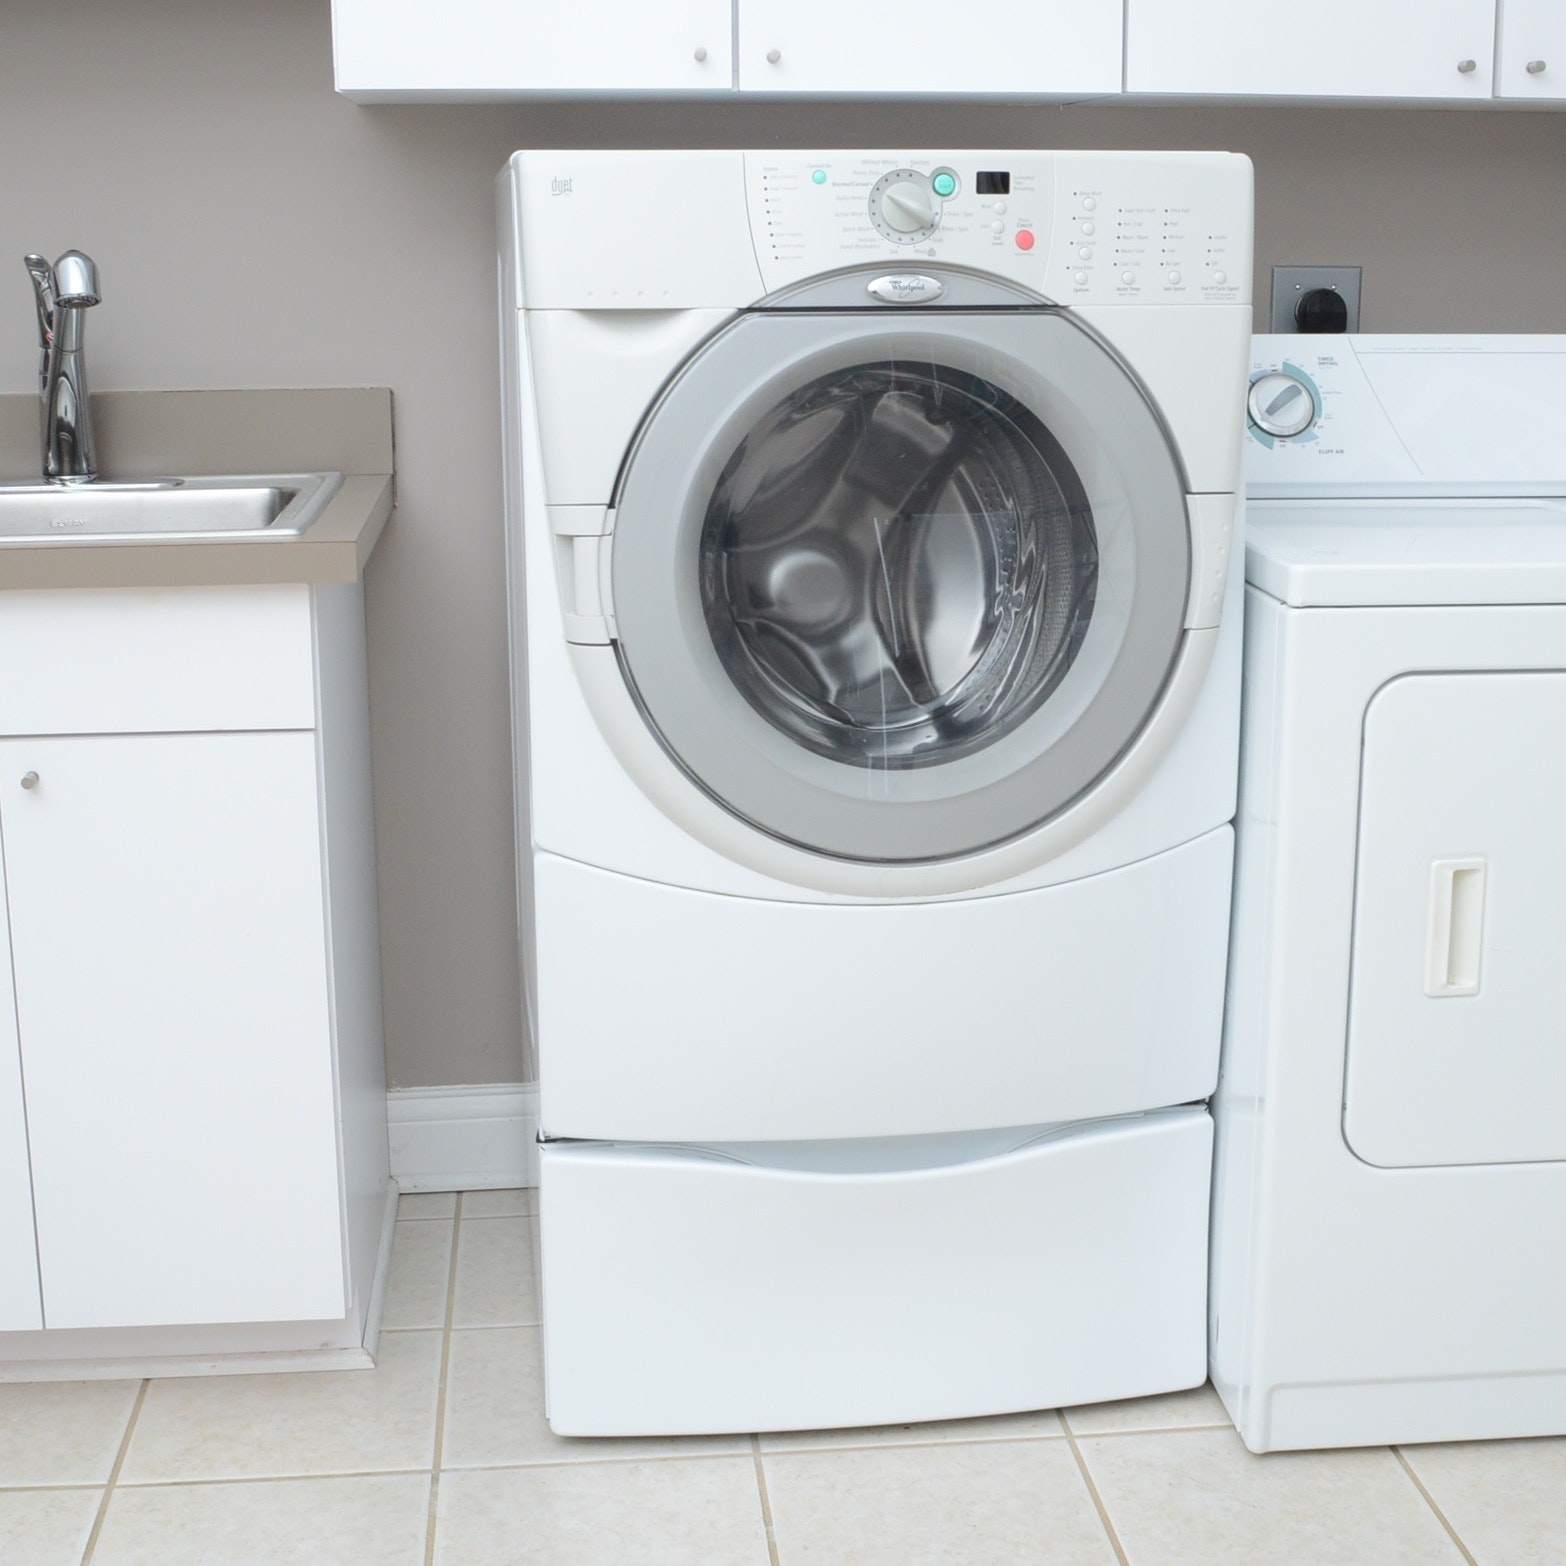 Whirlpool Duet HT Front Loading Washer